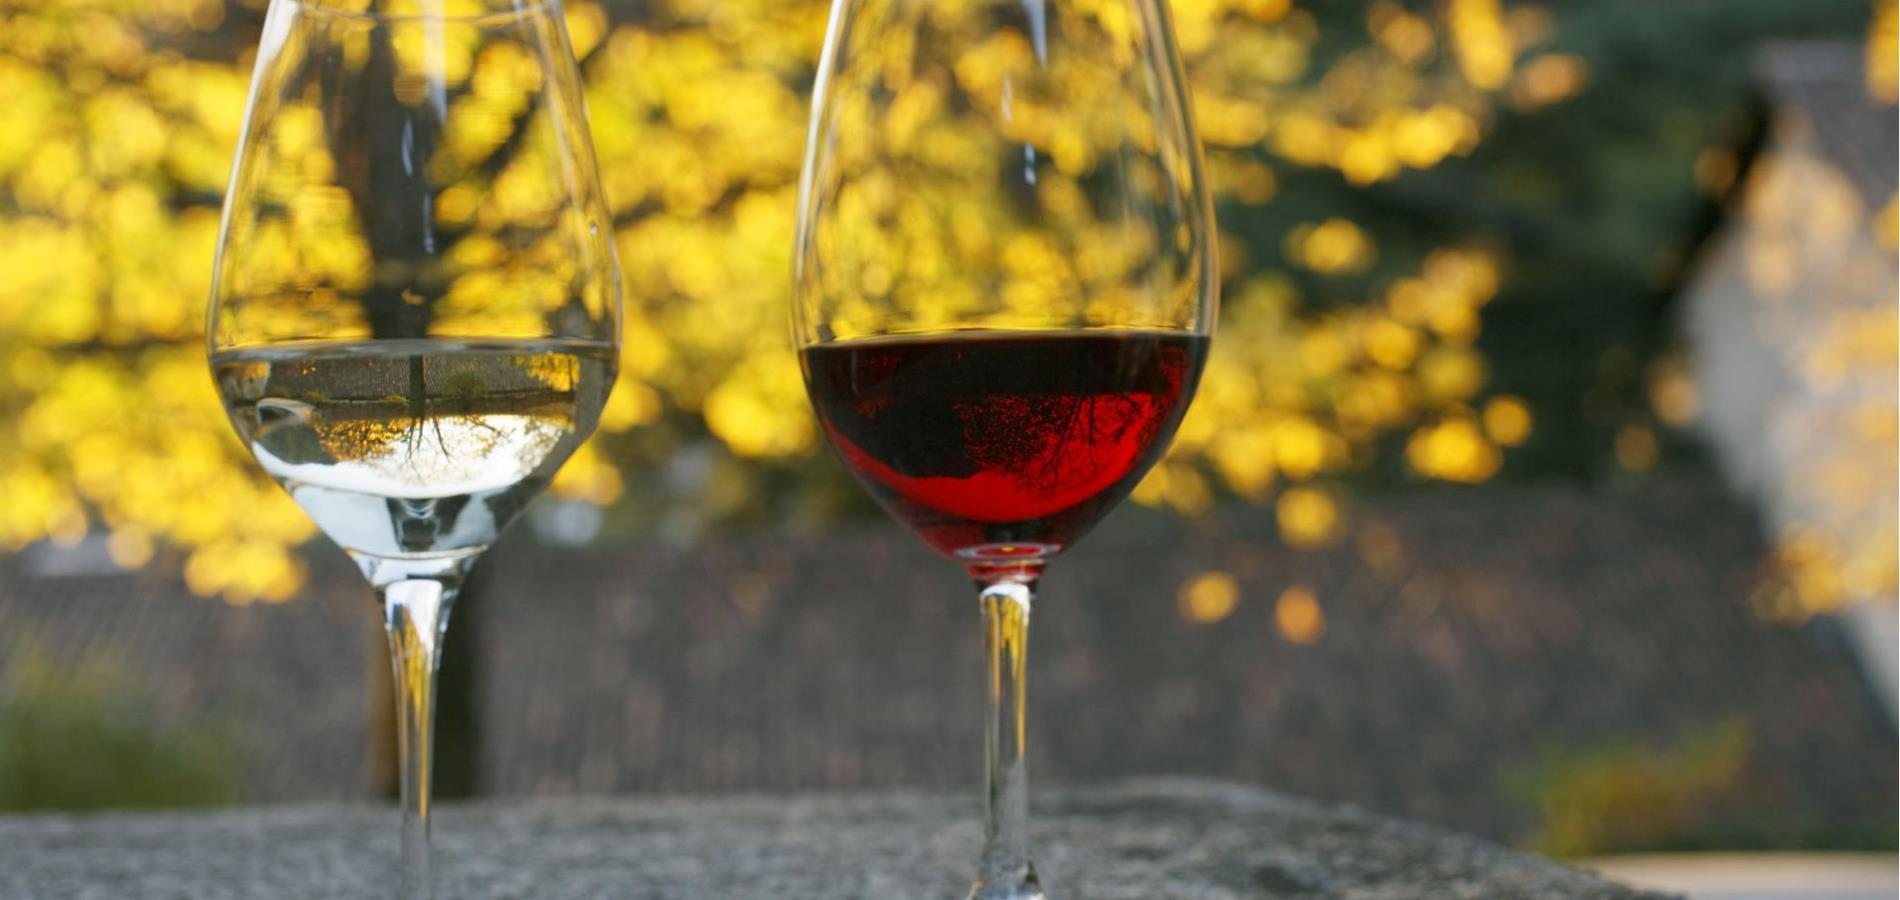 Wine from South Tyrol